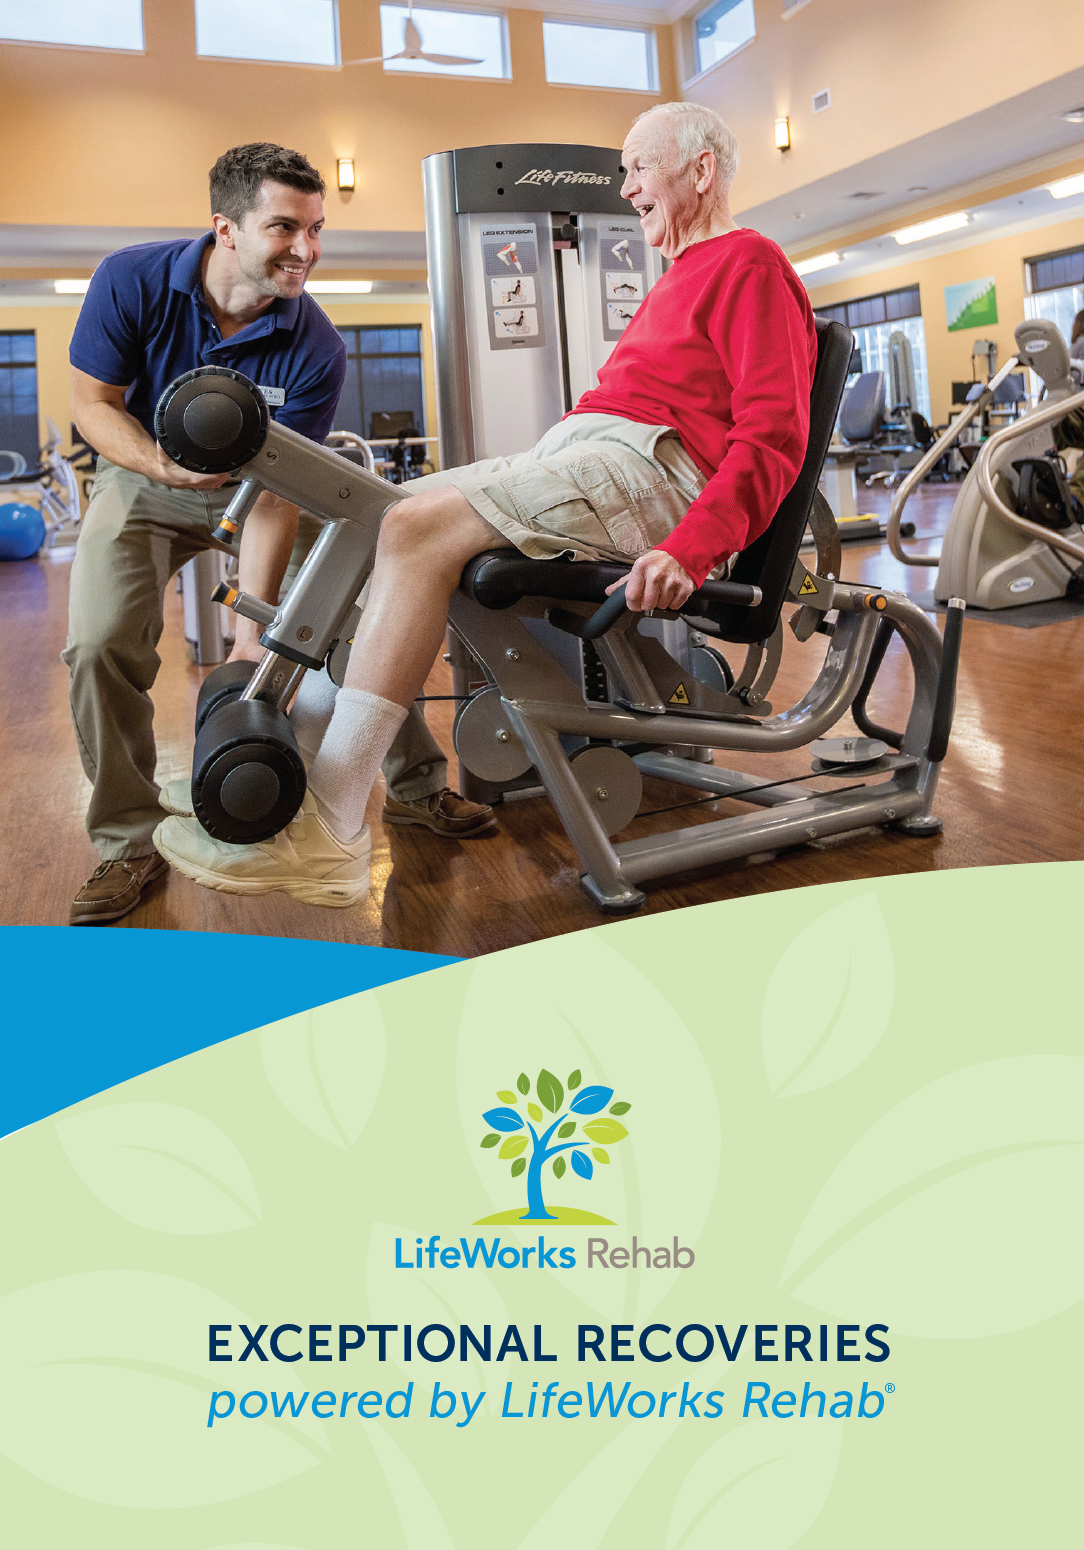 lifeworks-rehab-brochure_exceptional-recoveries